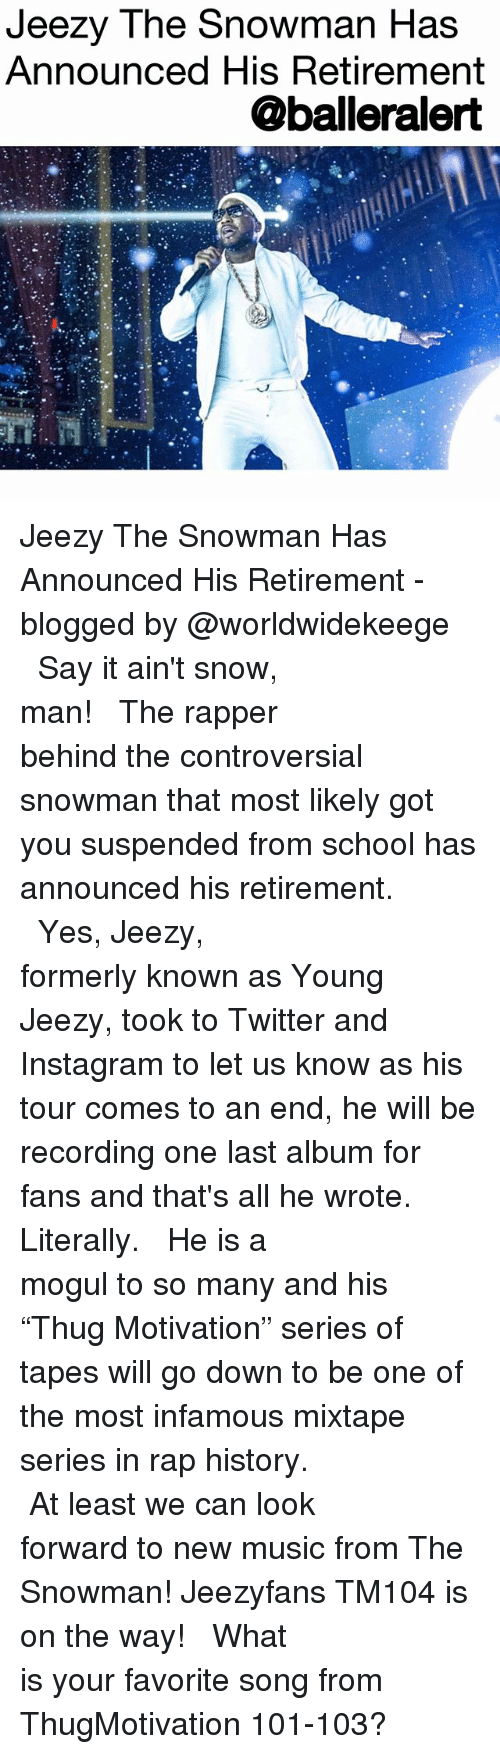 """Instagram, Young Jeezy, and Memes: Jeezy The Snowman Has  Announced His Retirement  @balleralert Jeezy The Snowman Has Announced His Retirement - blogged by @worldwidekeege ⠀⠀⠀⠀⠀⠀⠀⠀⠀ ⠀⠀⠀⠀⠀⠀⠀⠀⠀ Say it ain't snow, man! ⠀⠀⠀⠀⠀⠀⠀⠀⠀ ⠀⠀⠀⠀⠀⠀⠀⠀⠀ The rapper behind the controversial snowman that most likely got you suspended from school has announced his retirement. ⠀⠀⠀⠀⠀⠀⠀⠀⠀ ⠀⠀⠀⠀⠀⠀⠀⠀⠀ Yes, Jeezy, formerly known as Young Jeezy, took to Twitter and Instagram to let us know as his tour comes to an end, he will be recording one last album for fans and that's all he wrote. Literally. ⠀⠀⠀⠀⠀⠀⠀⠀⠀ ⠀⠀⠀⠀⠀⠀⠀⠀⠀ He is a mogul to so many and his """"Thug Motivation"""" series of tapes will go down to be one of the most infamous mixtape series in rap history. ⠀⠀⠀⠀⠀⠀⠀⠀⠀ ⠀⠀⠀⠀⠀⠀⠀⠀⠀ At least we can look forward to new music from The Snowman! Jeezyfans TM104 is on the way! ⠀⠀⠀⠀⠀⠀⠀⠀⠀ ⠀⠀⠀⠀⠀⠀⠀⠀⠀ What is your favorite song from ThugMotivation 101-103?"""